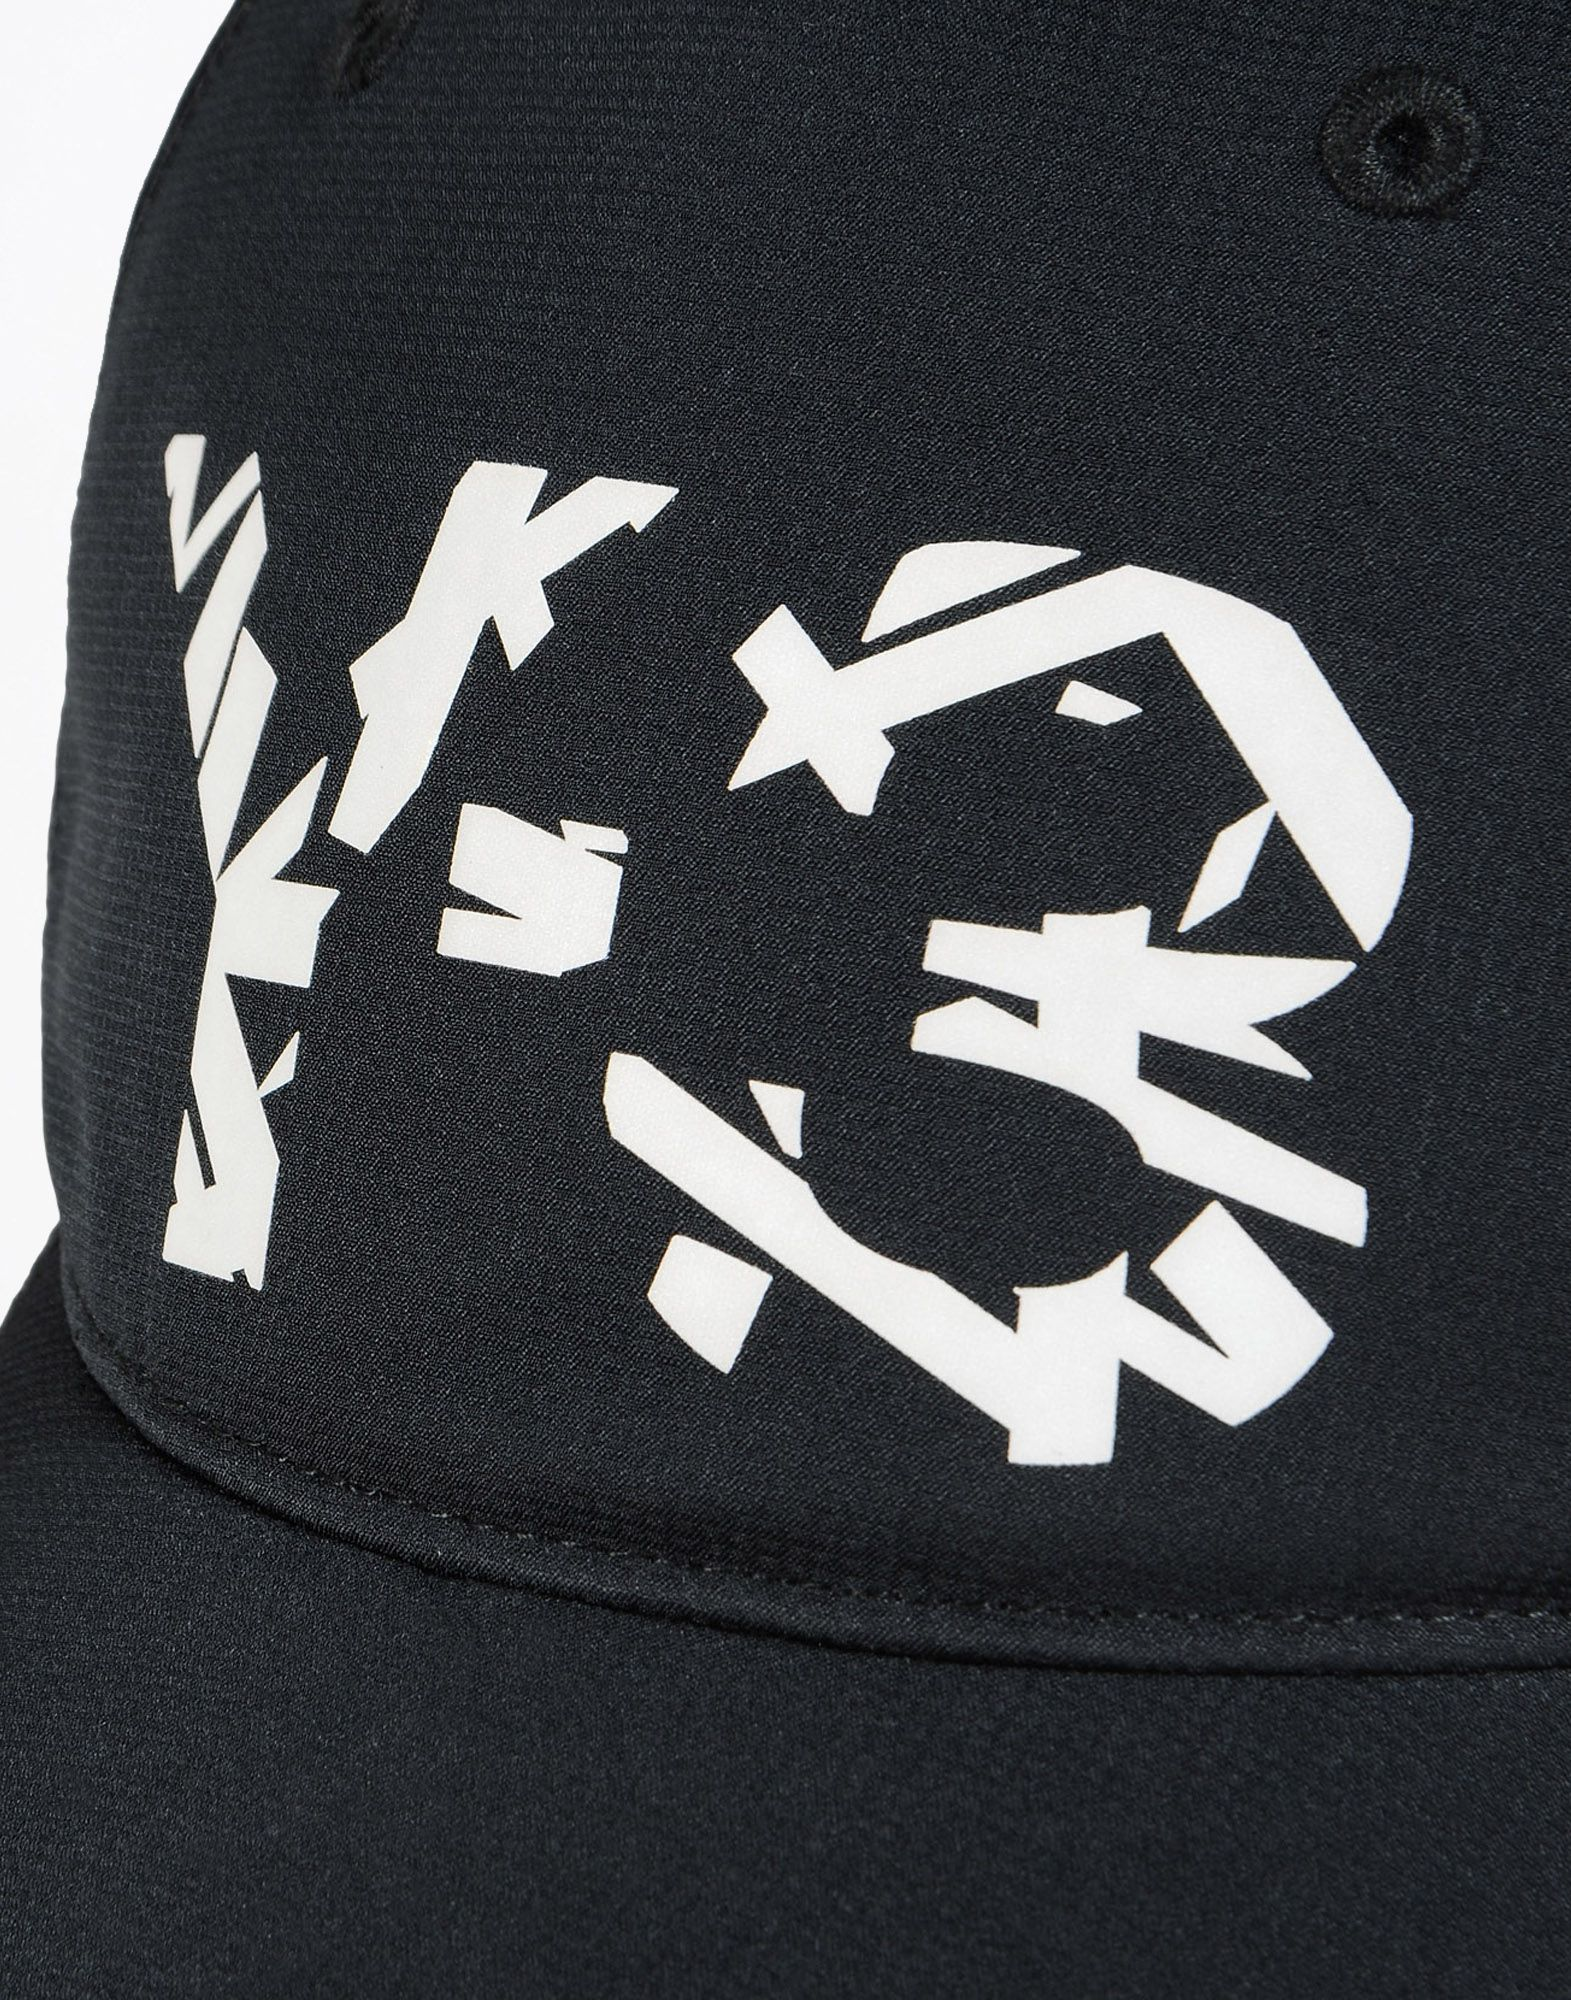 Y-3 LOGO CAP OTHER ACCESSORIES unisex Y-3 adidas